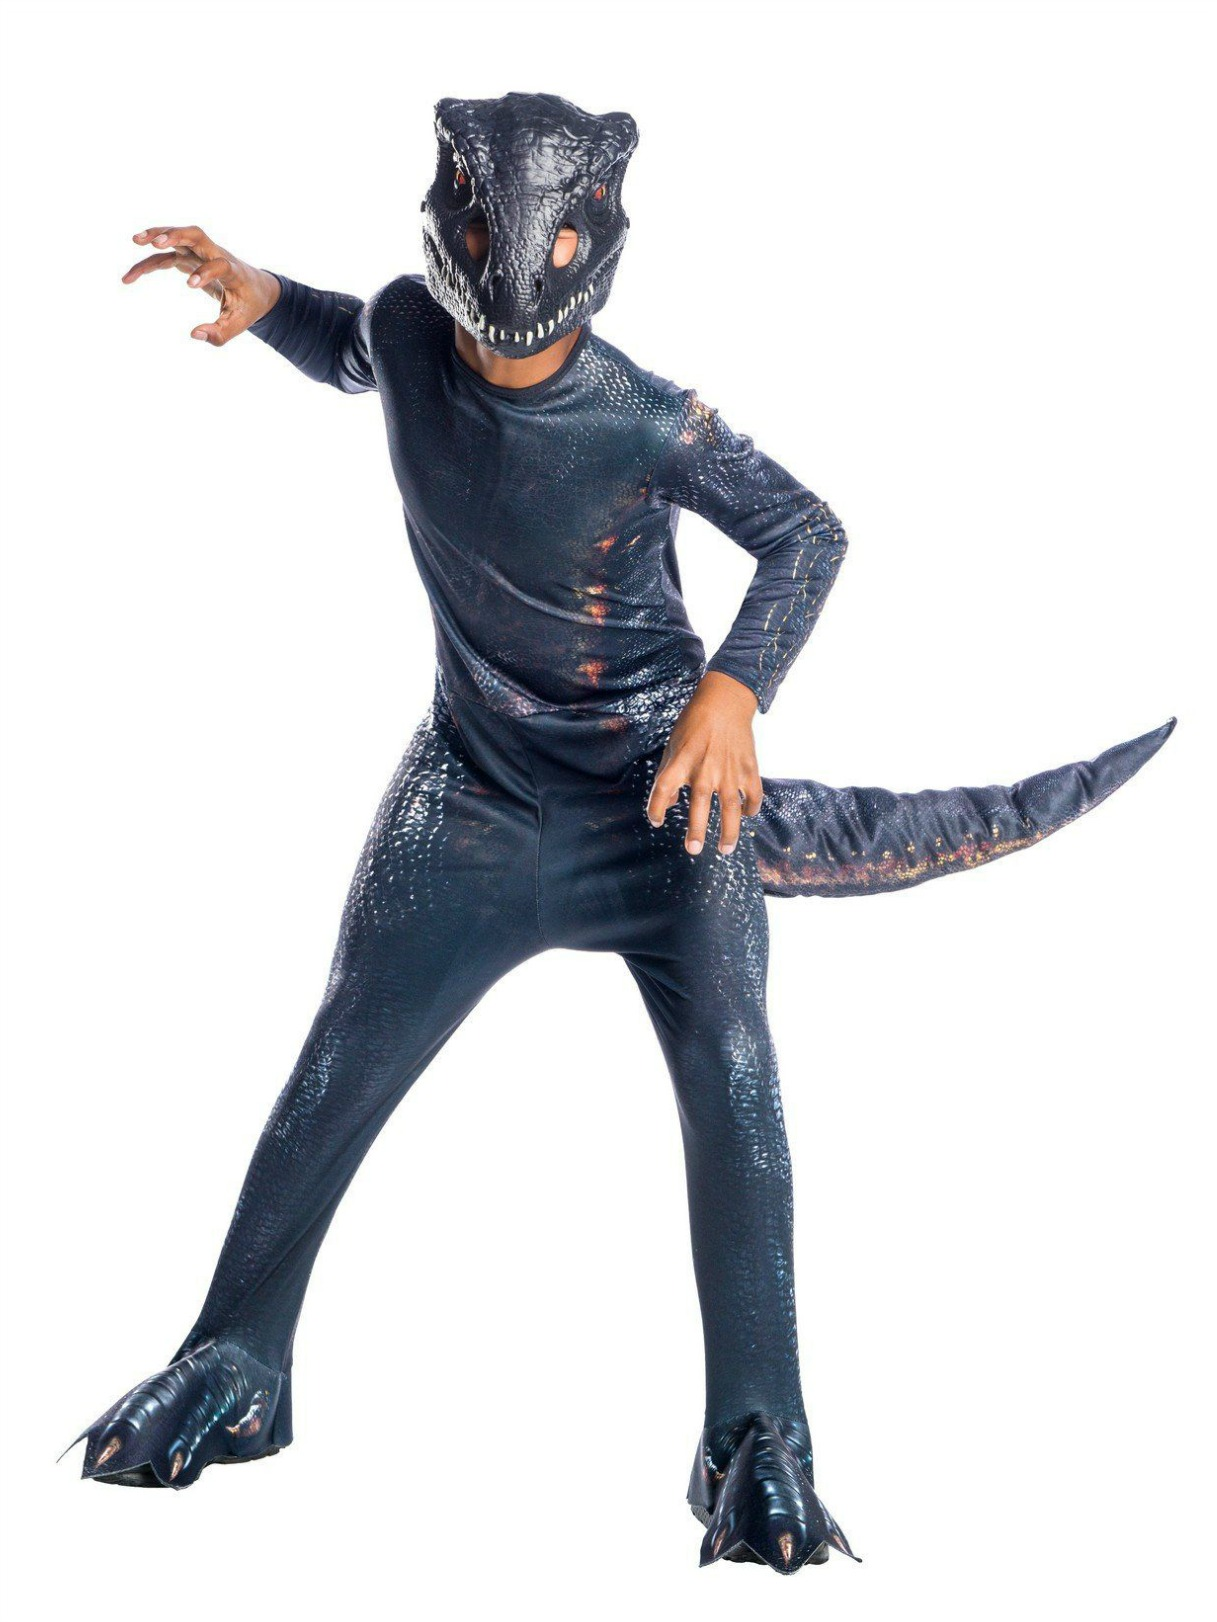 Jurassic World Fallen Kingdom Rouge Dinosaur Child Costume